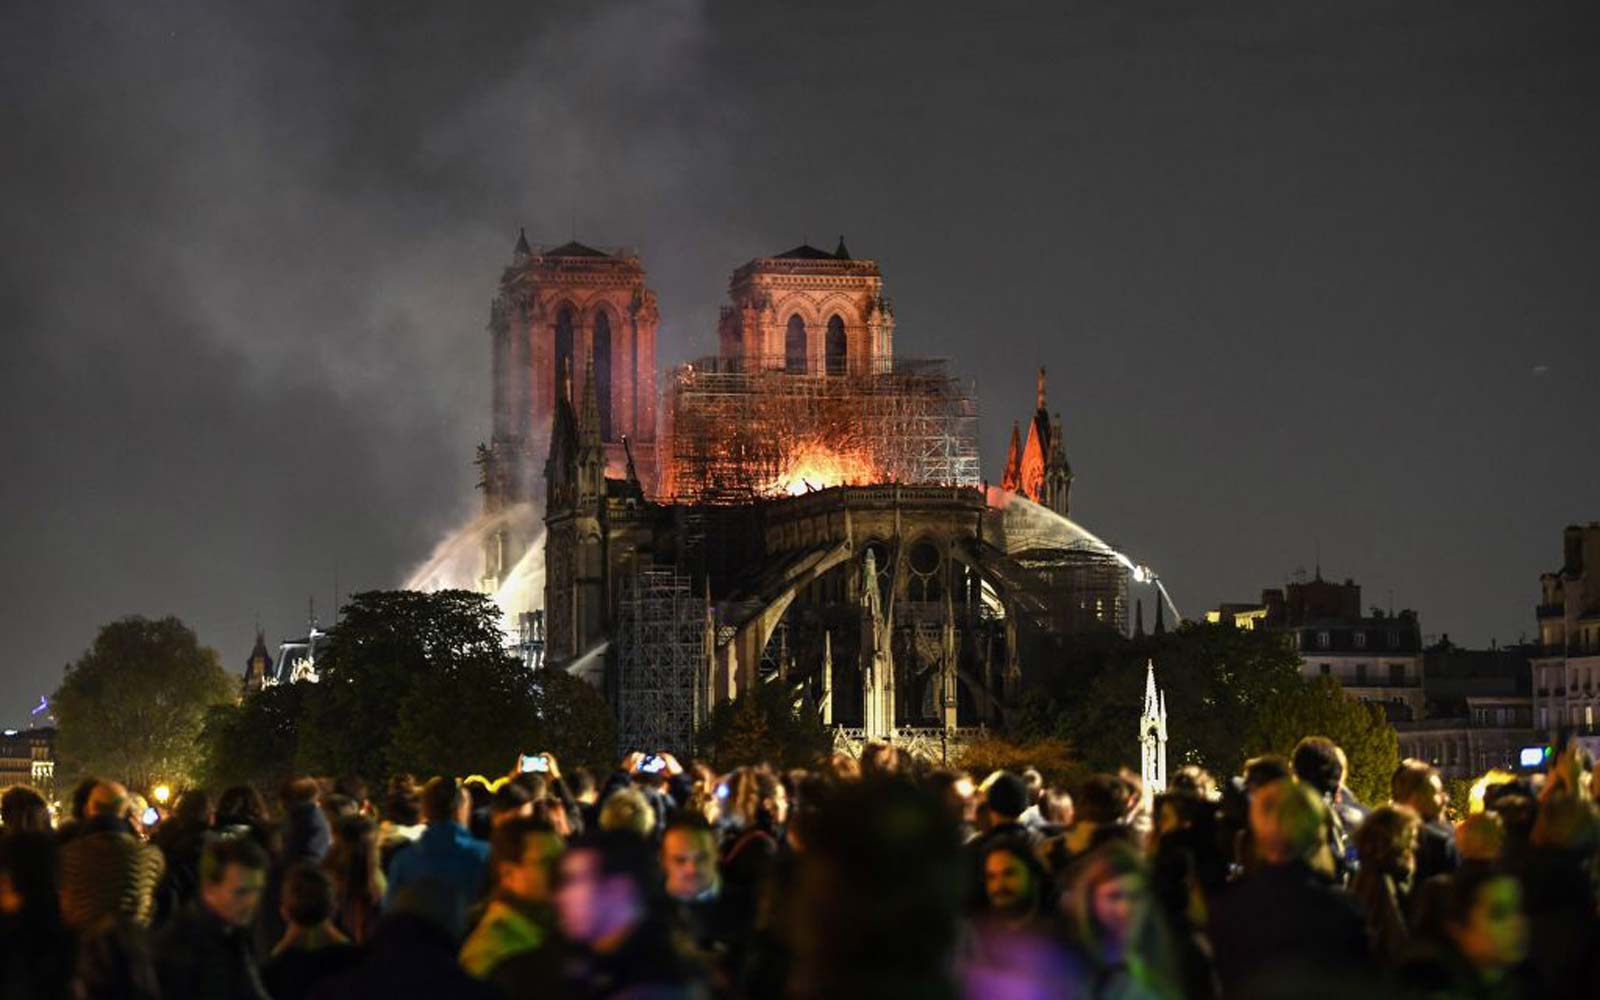 Watch Crowds in Paris Sing 'Ave Maria' While Watching Fire at Notre Dame Cathedral